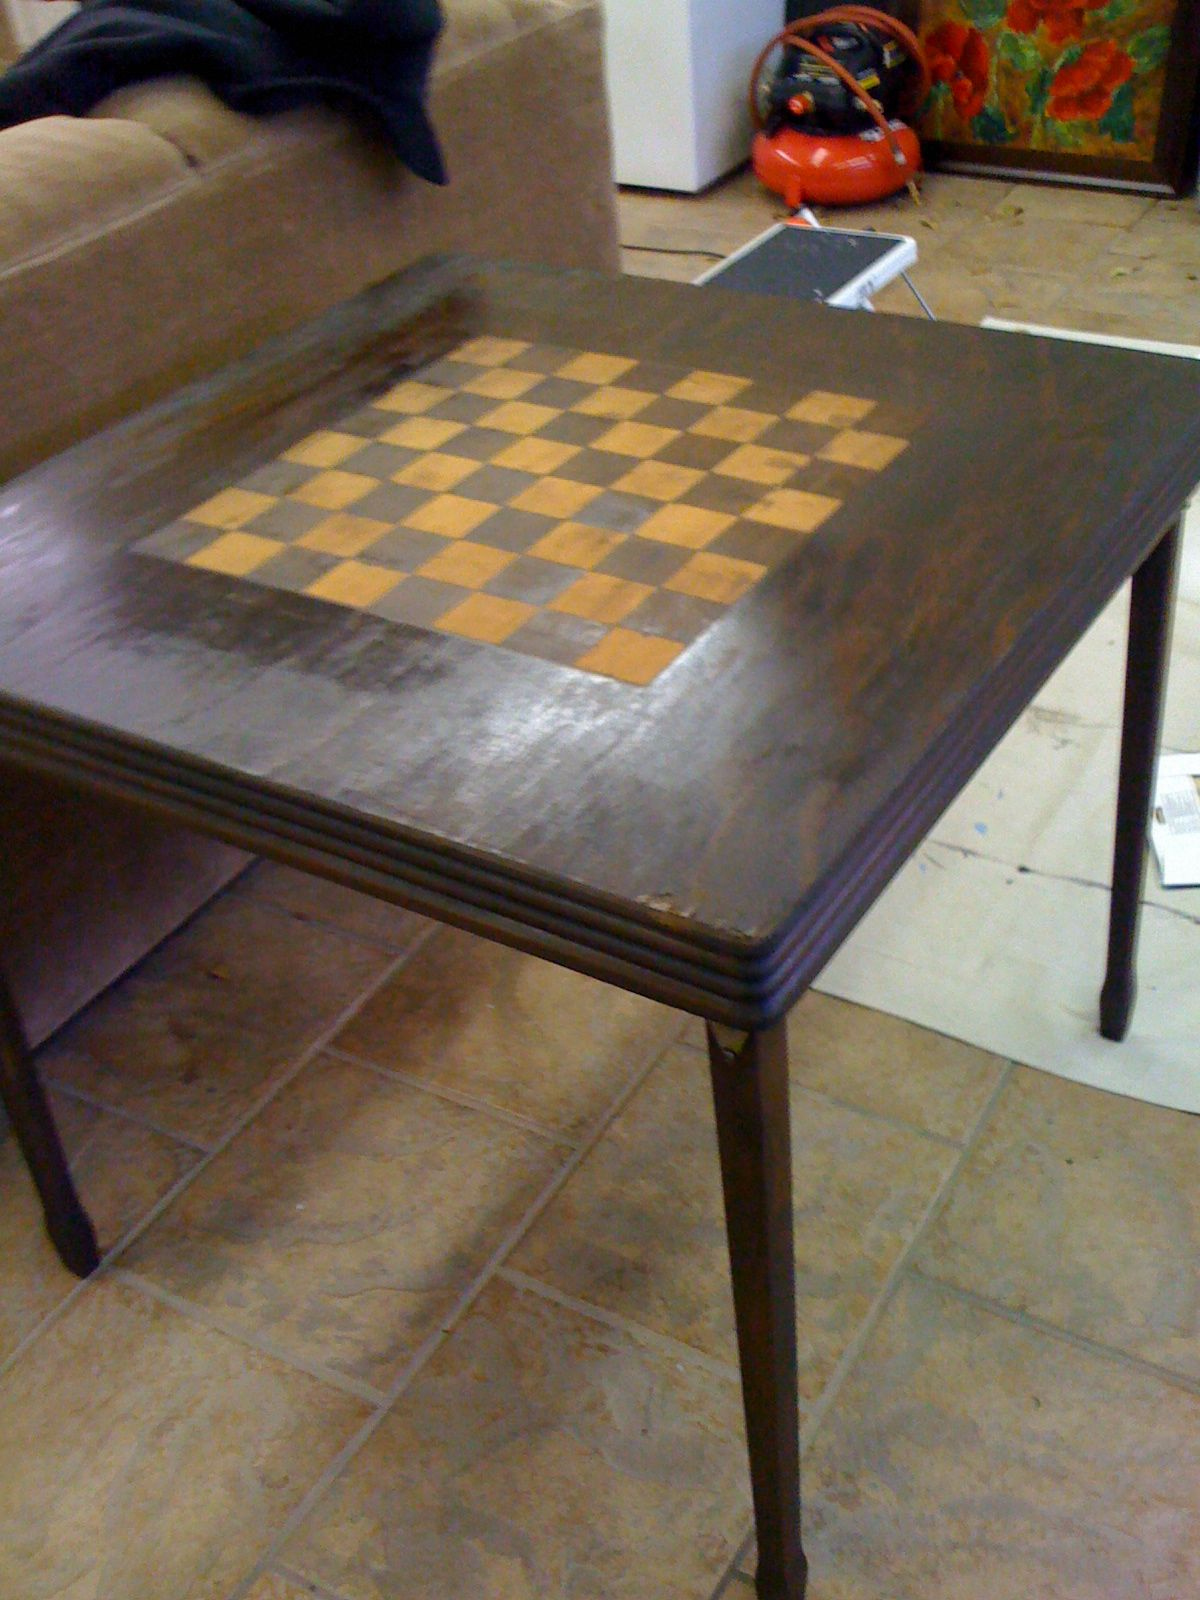 Stained Wooden Card Table (with Checkerboard Design)